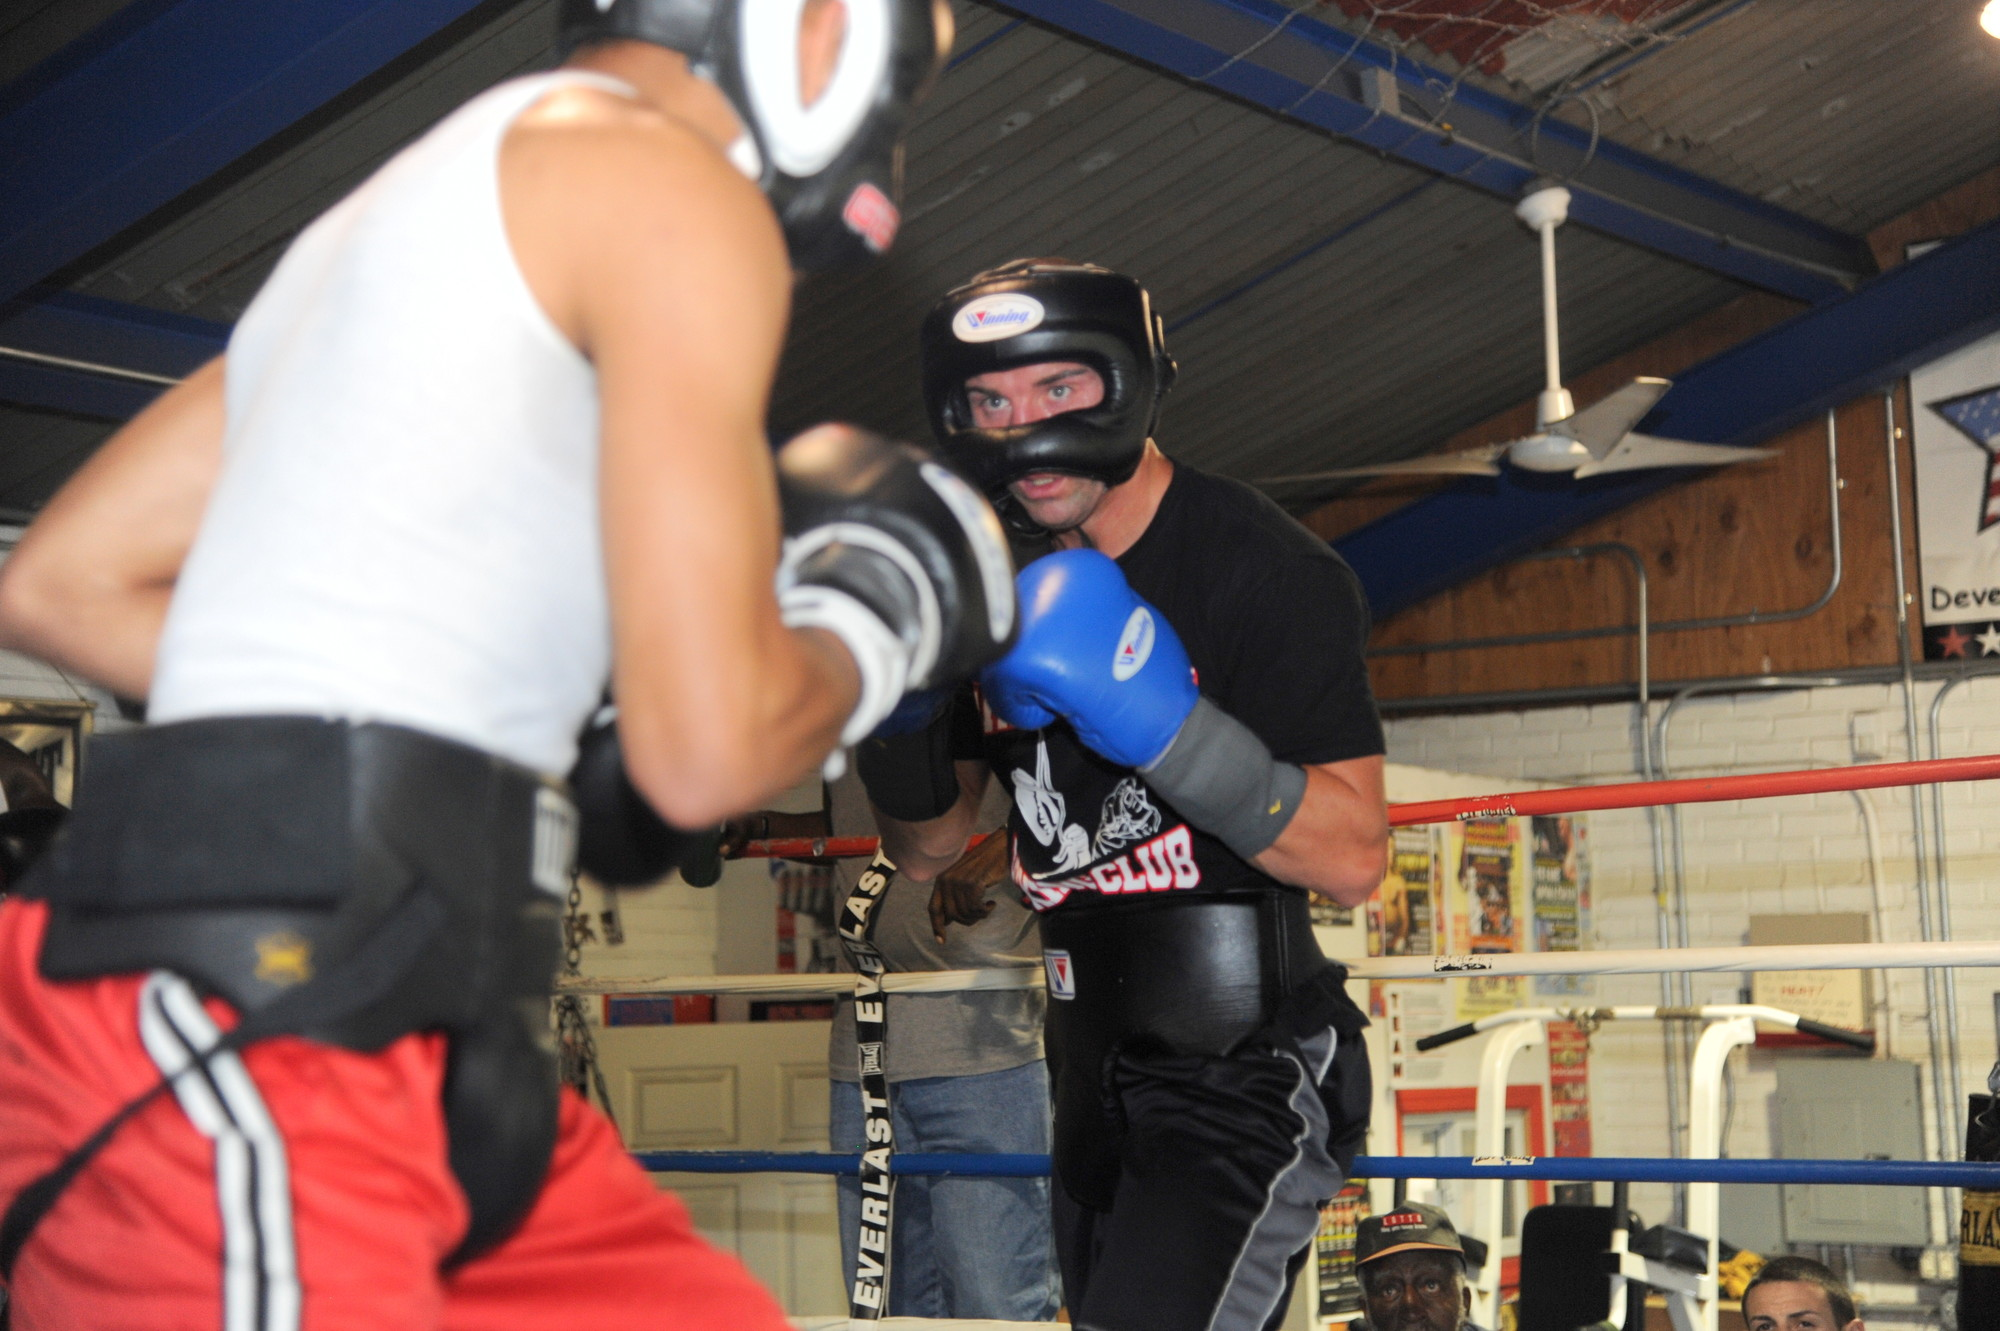 Seanie Monaghan sparred at the Freeport PAL last week as he trained for Saturday